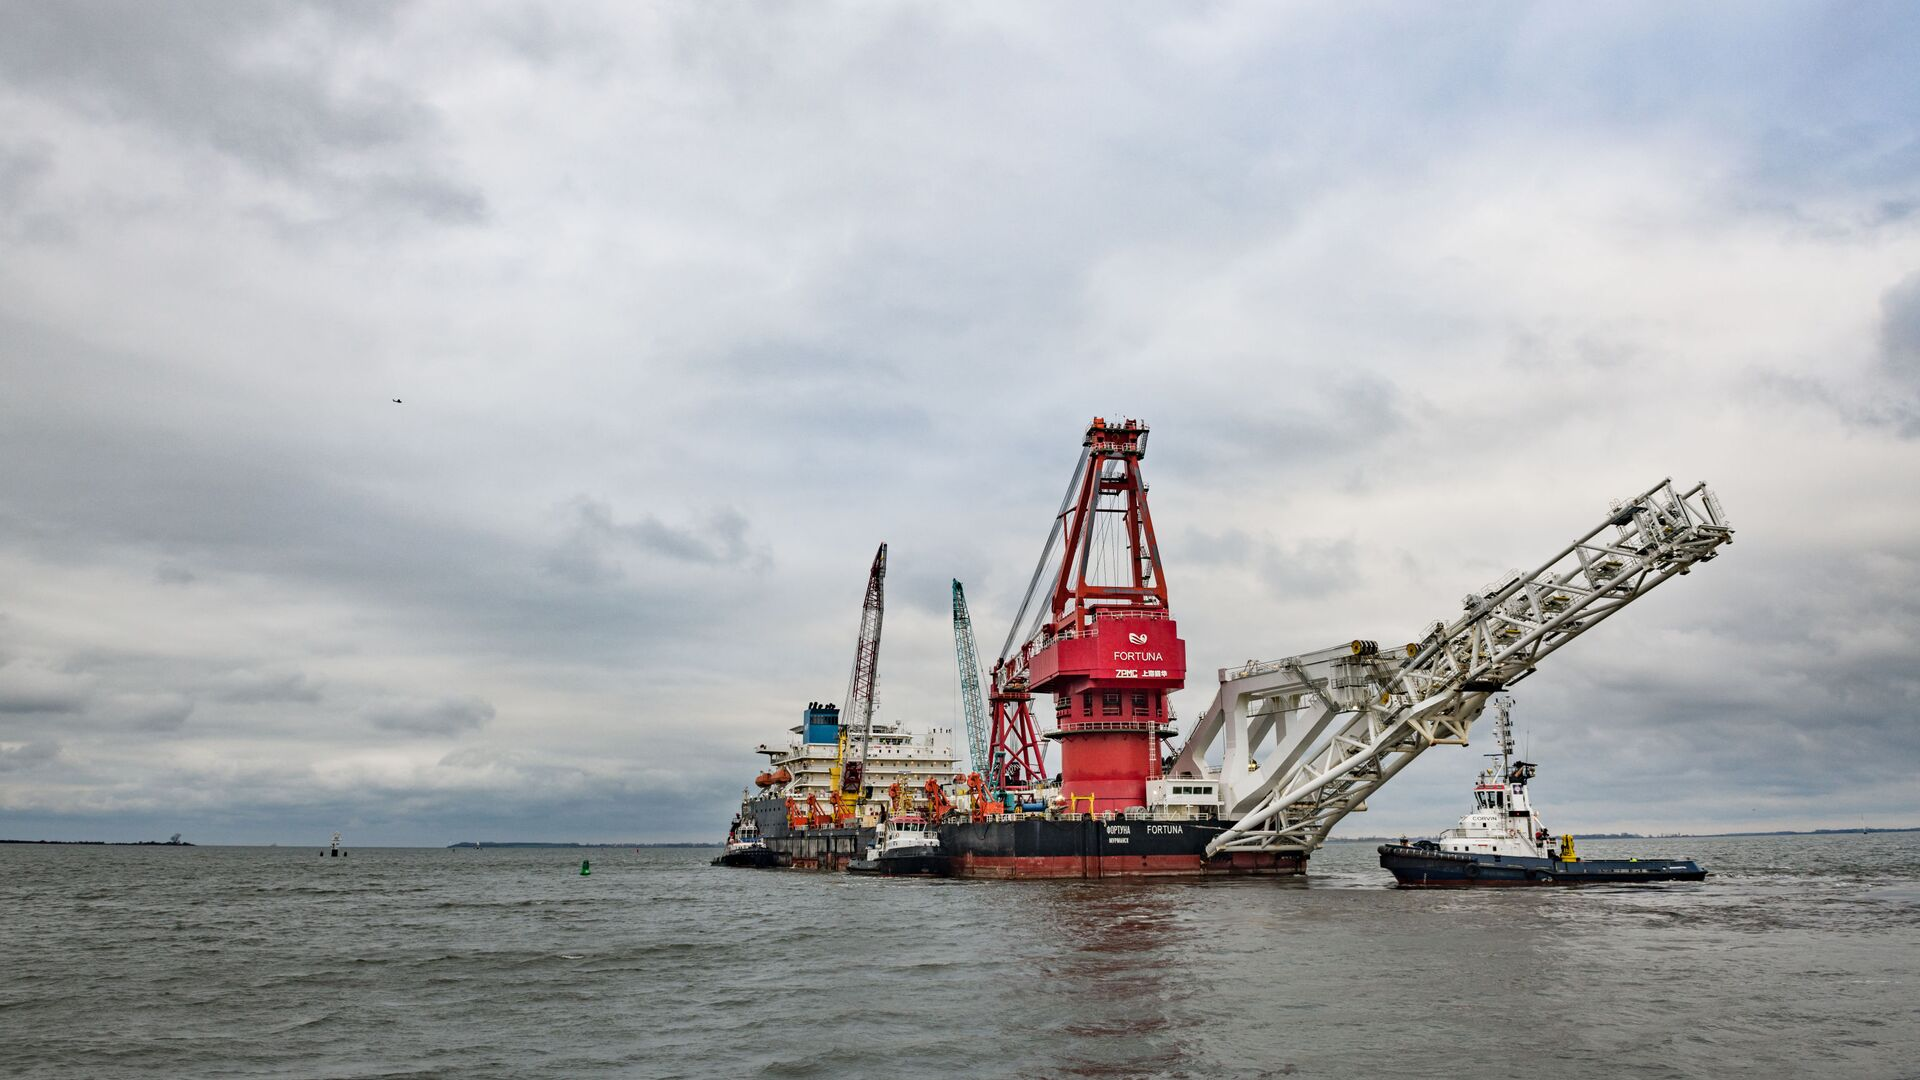 Pipe-laying vessel Fortuna leaves the port of Wismar to work on Nord Stream 2 construction - Sputnik International, 1920, 23.09.2021